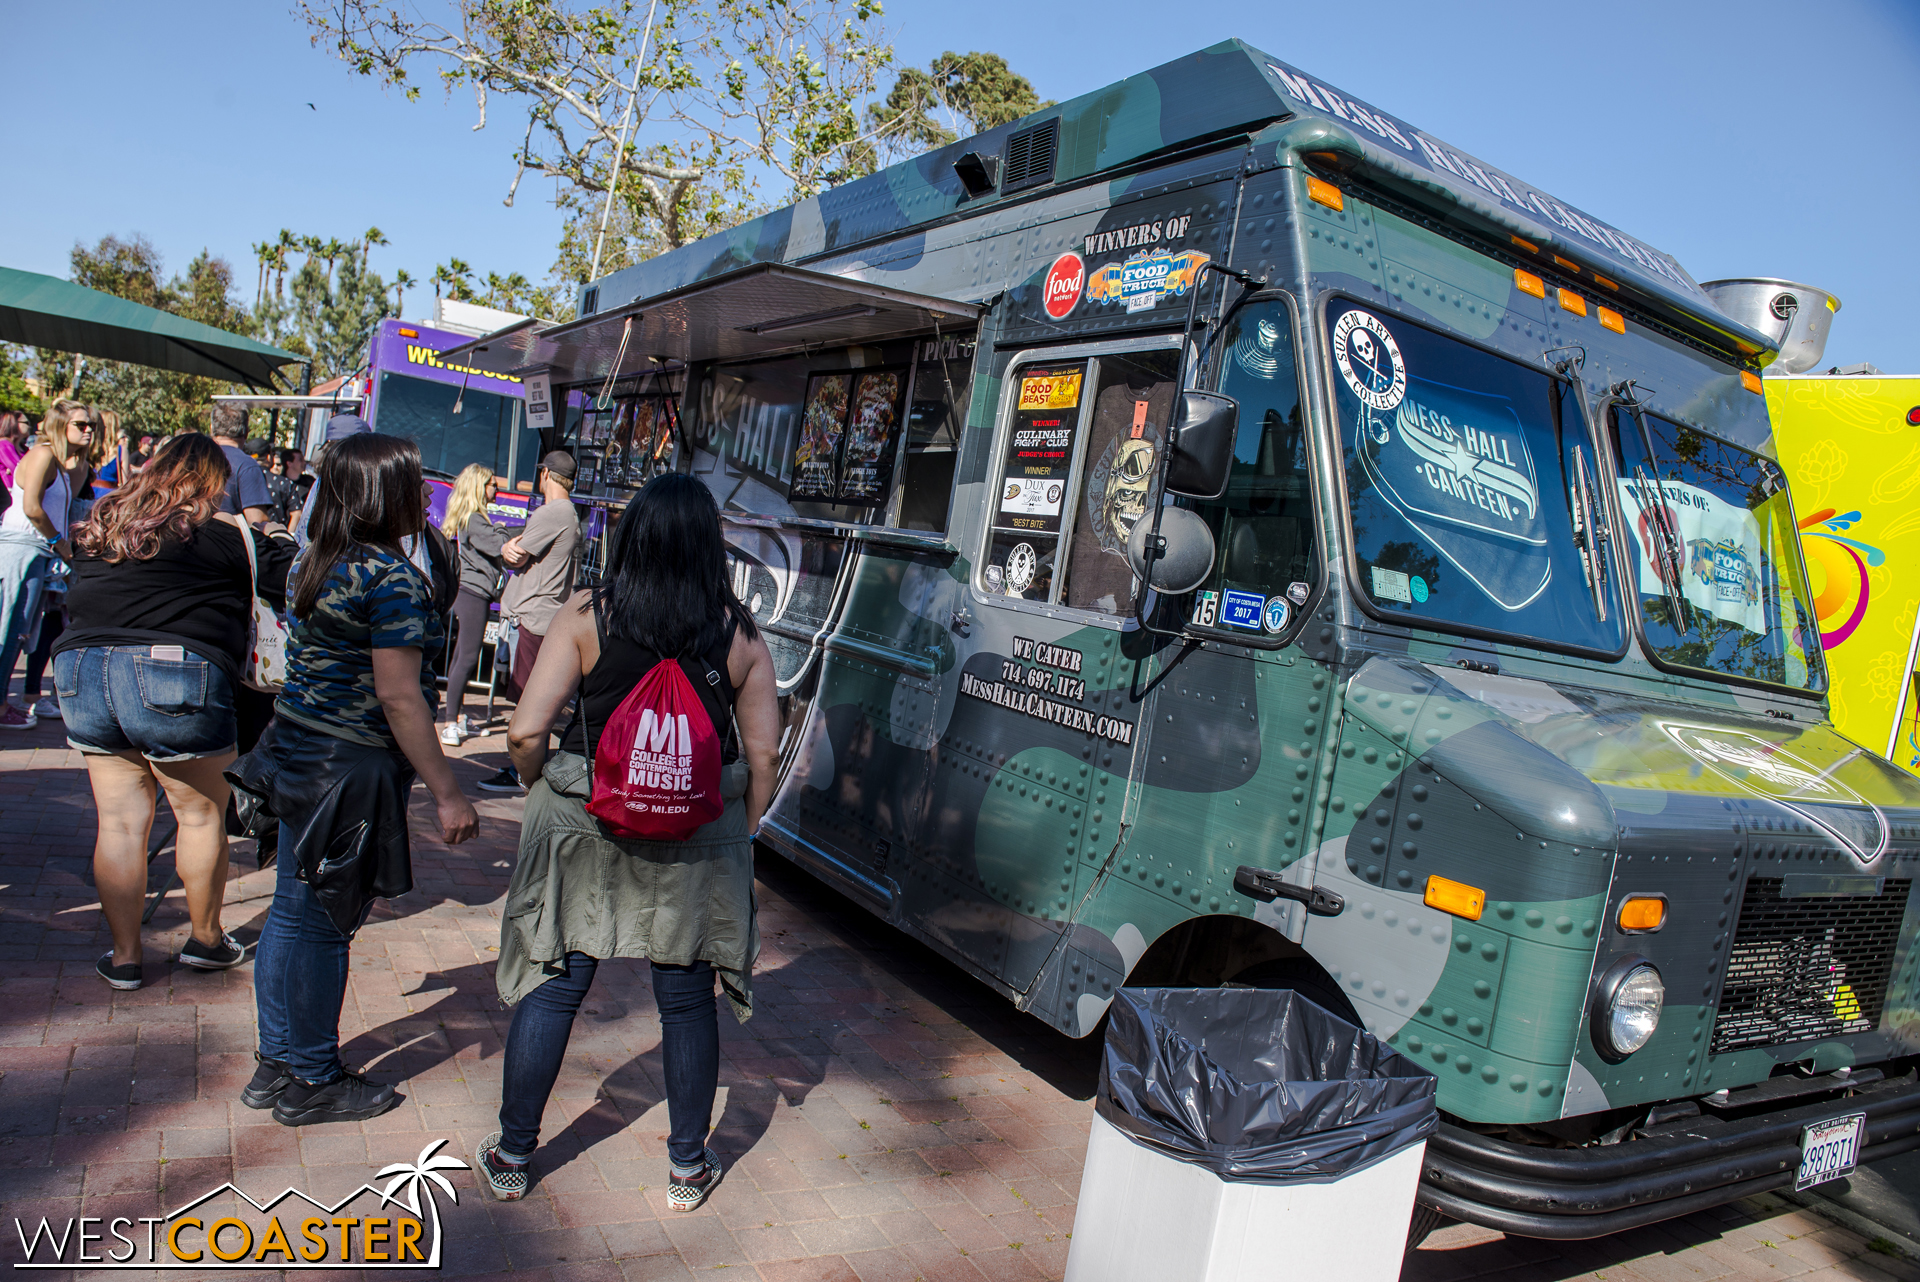 More food trucks at the interior of the grounds.